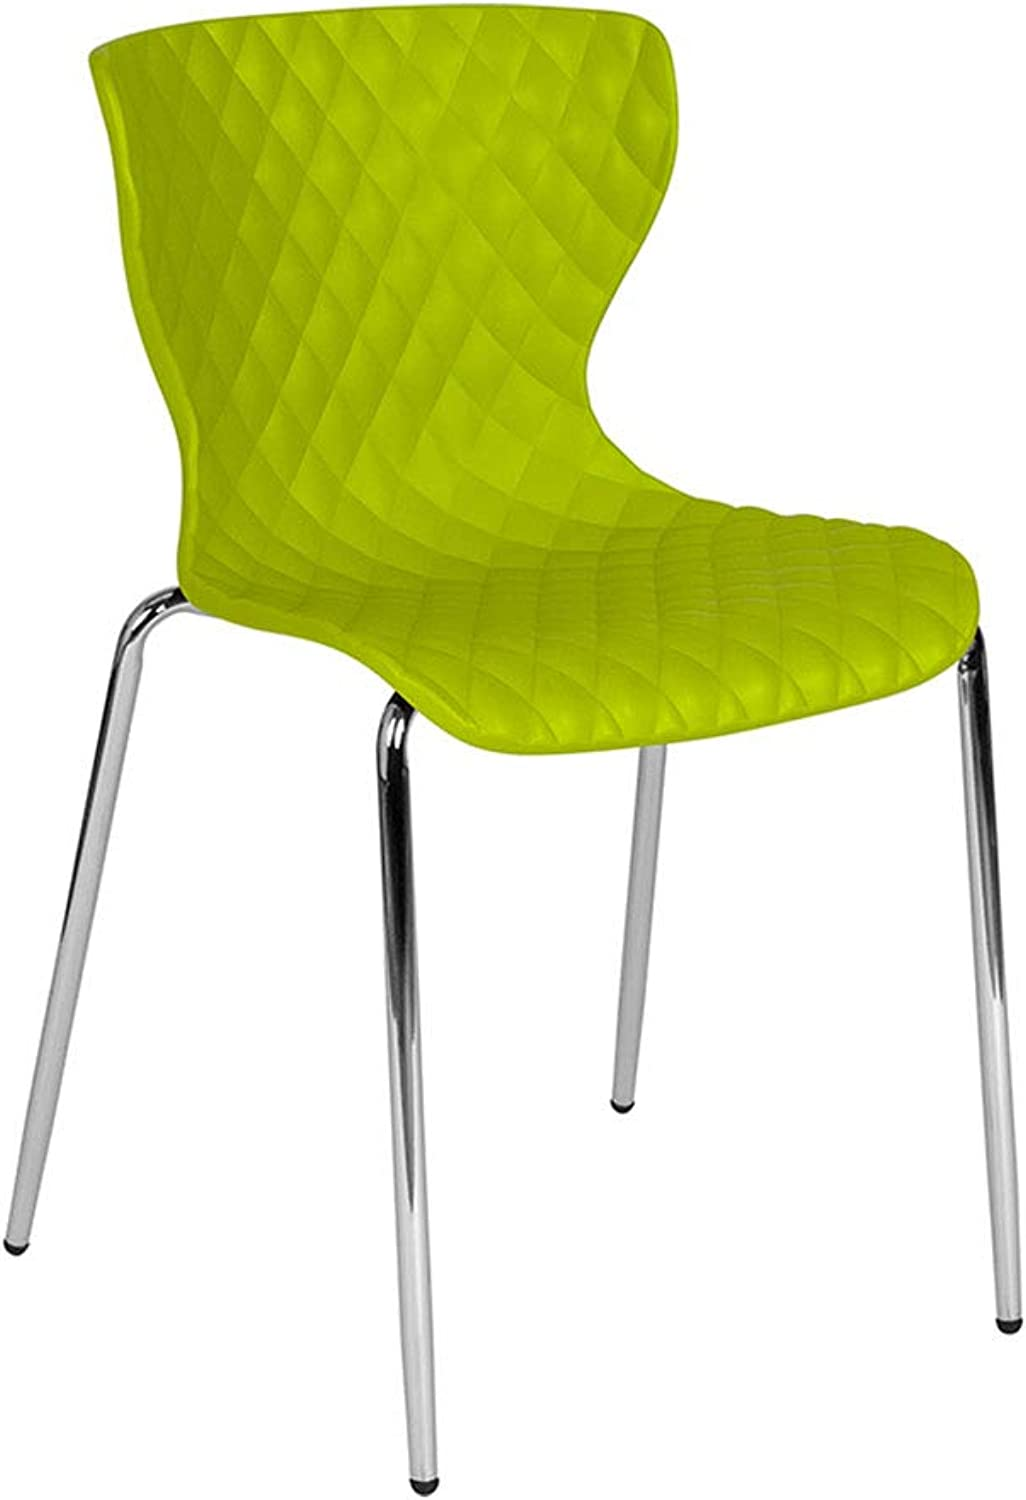 Offex Contemporary Design Curved Back Plastic Stack Chair, Citrus Green